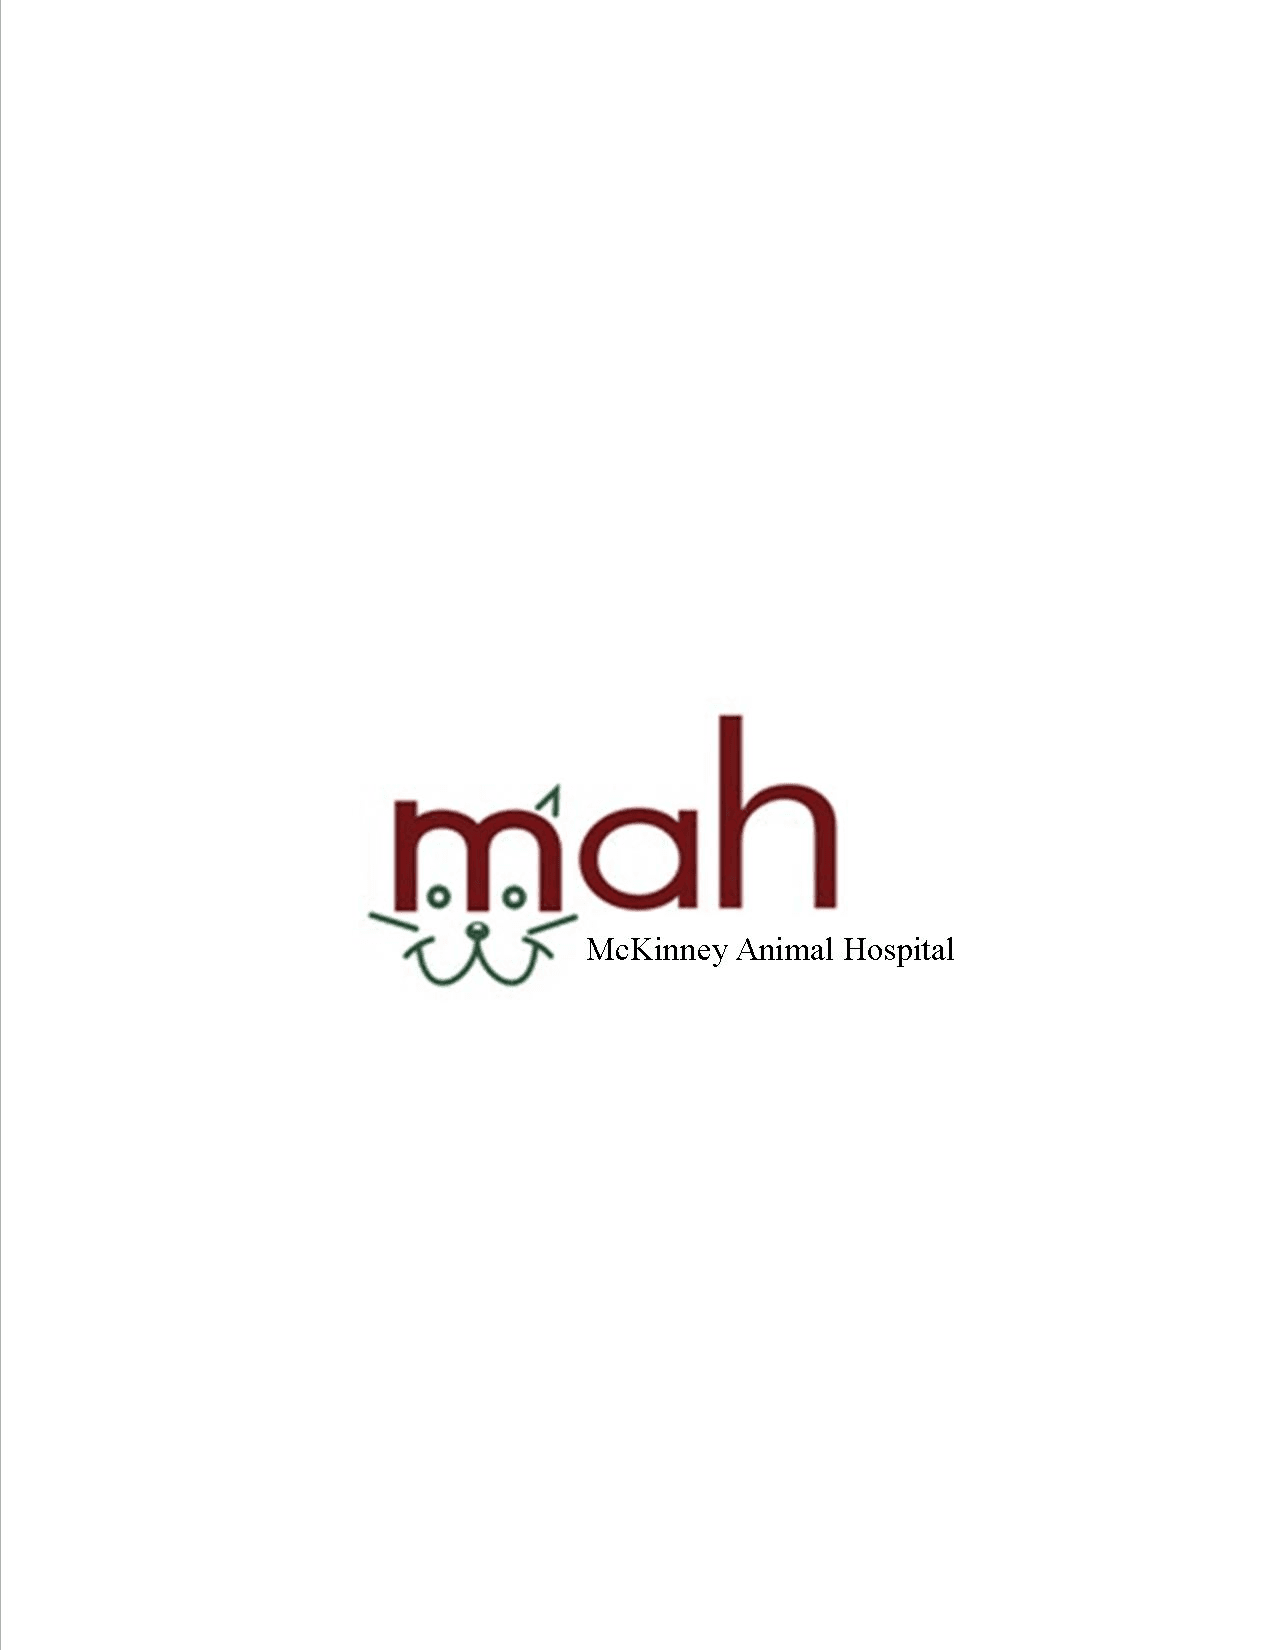 Logowithmah